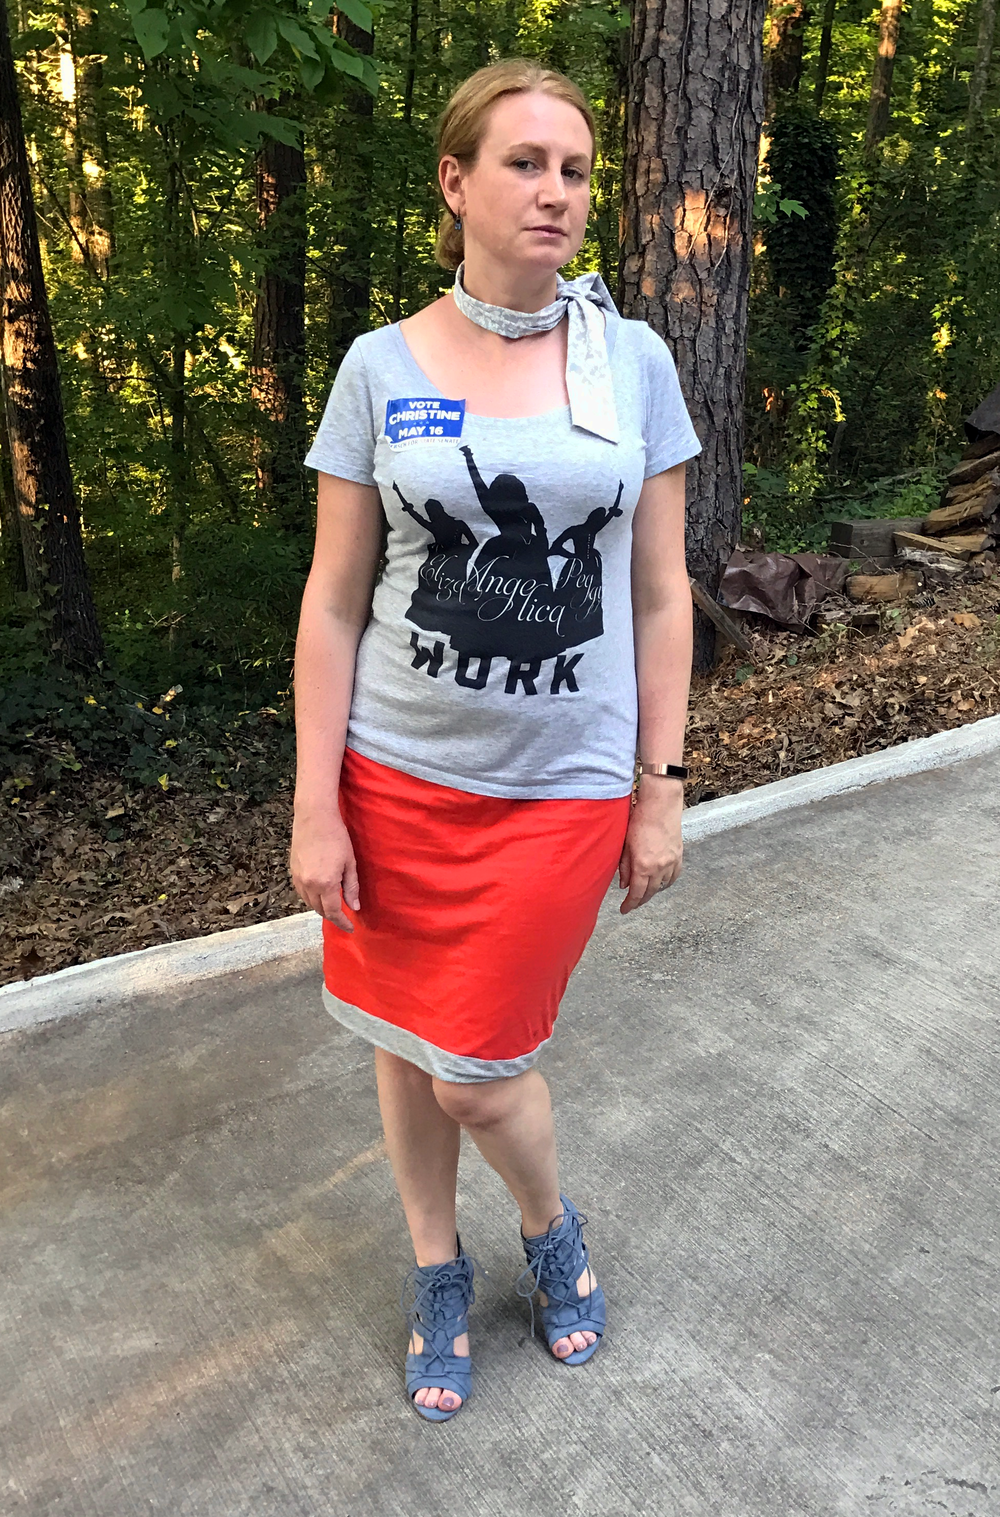 Target scarf, Hamilton Tee shirt (from NYC show), cabi reversible skirt (older),  Nedala sandal  from JustFab.